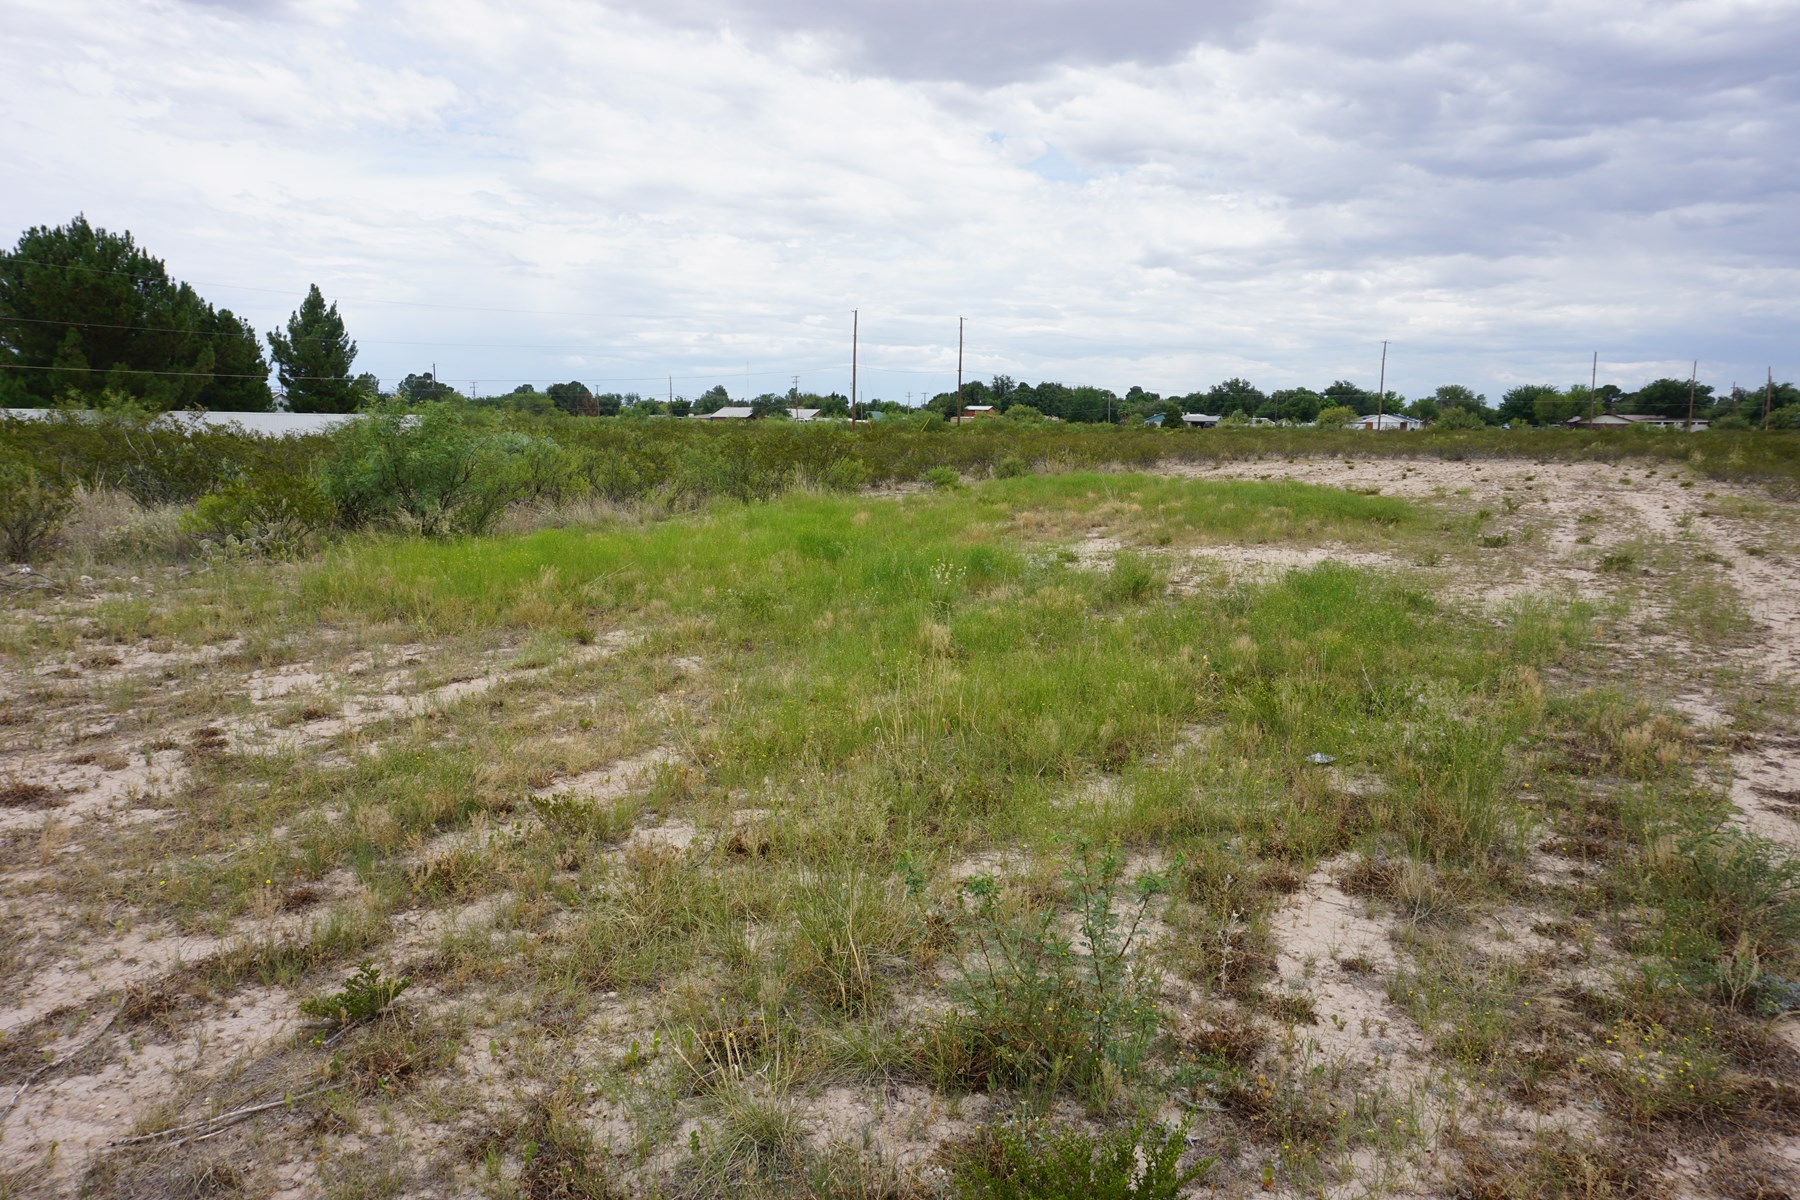 CITY LIMITS OF FORT STOCKTON, TEXAS - LOT FOR SALE!